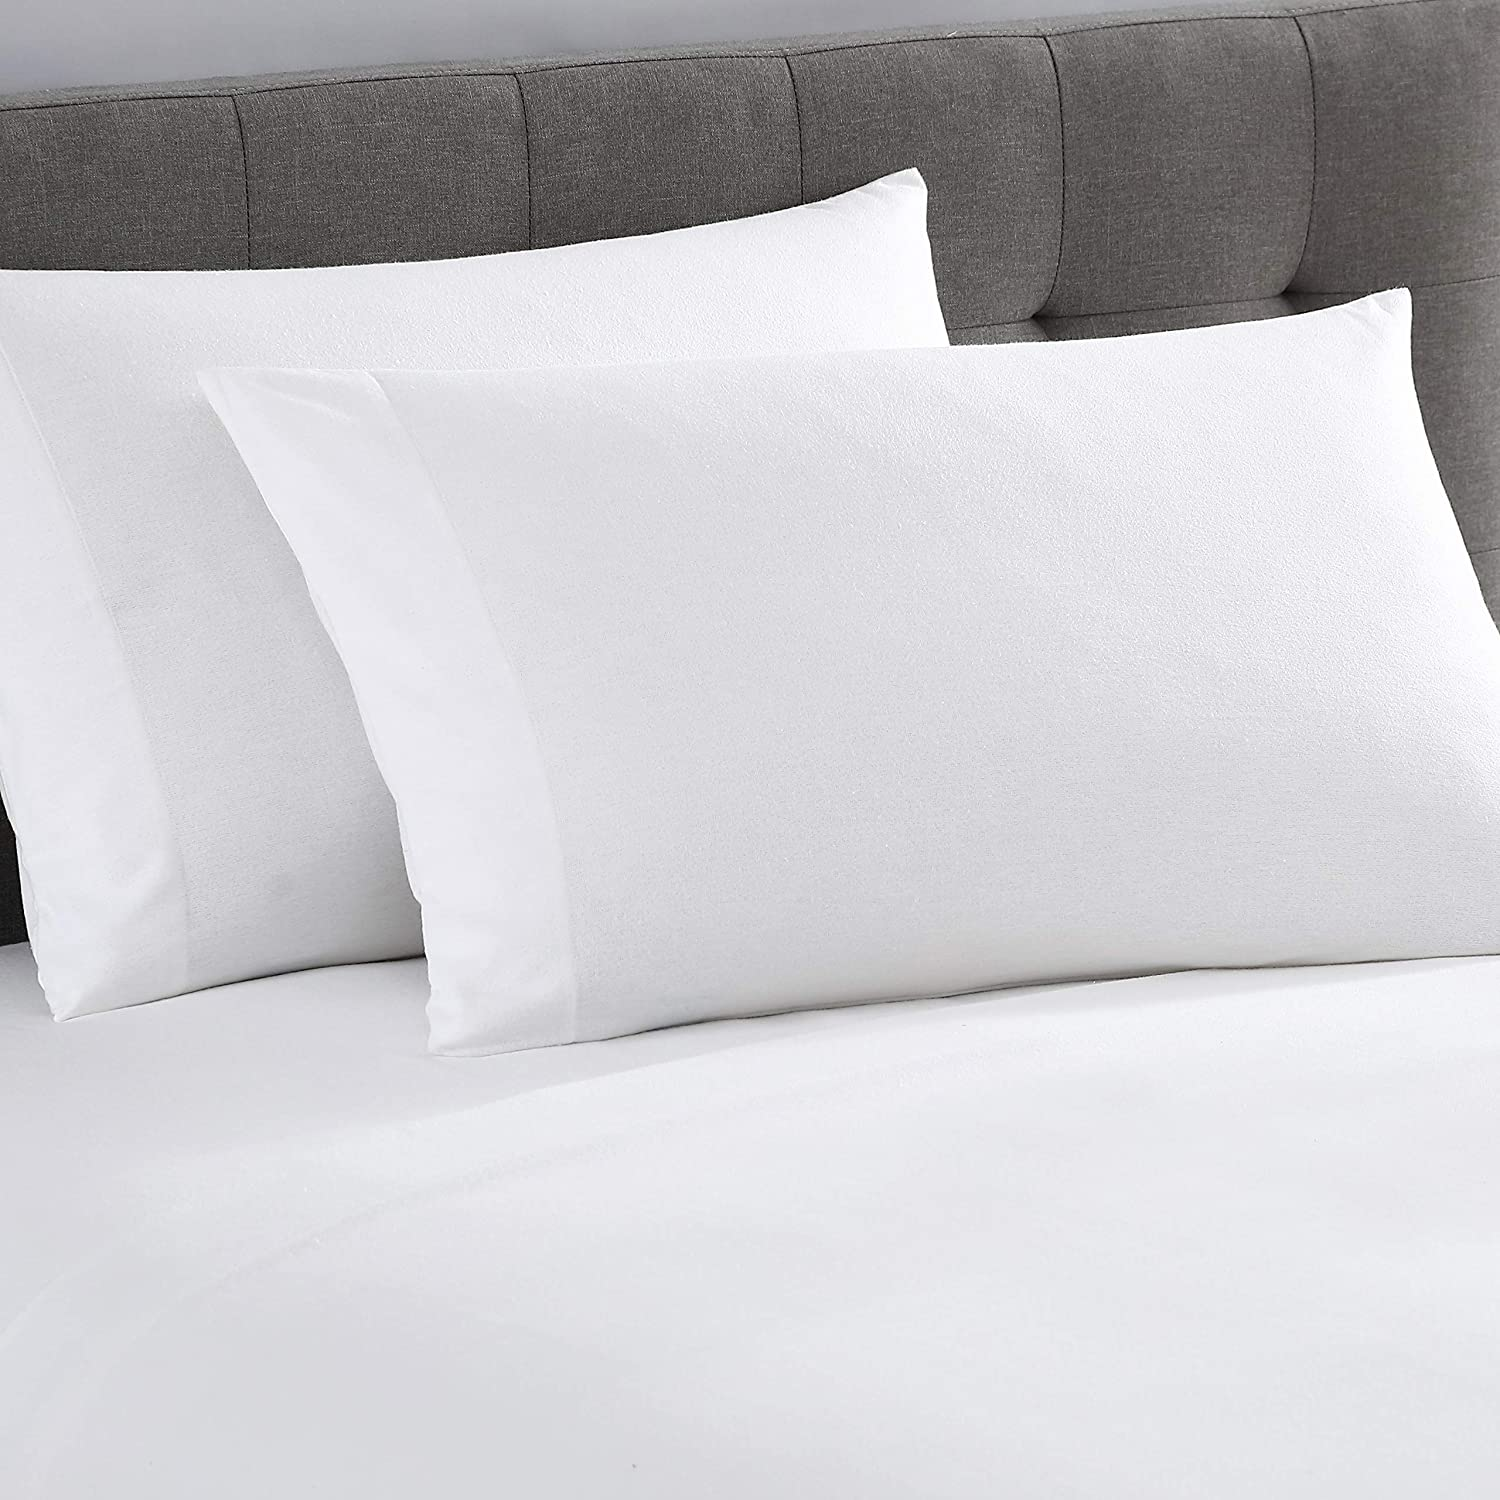 UGG Gracen 100% Cotton Luxury Pillowcase Fabric Flannel depot Pair Sales results No. 1 S